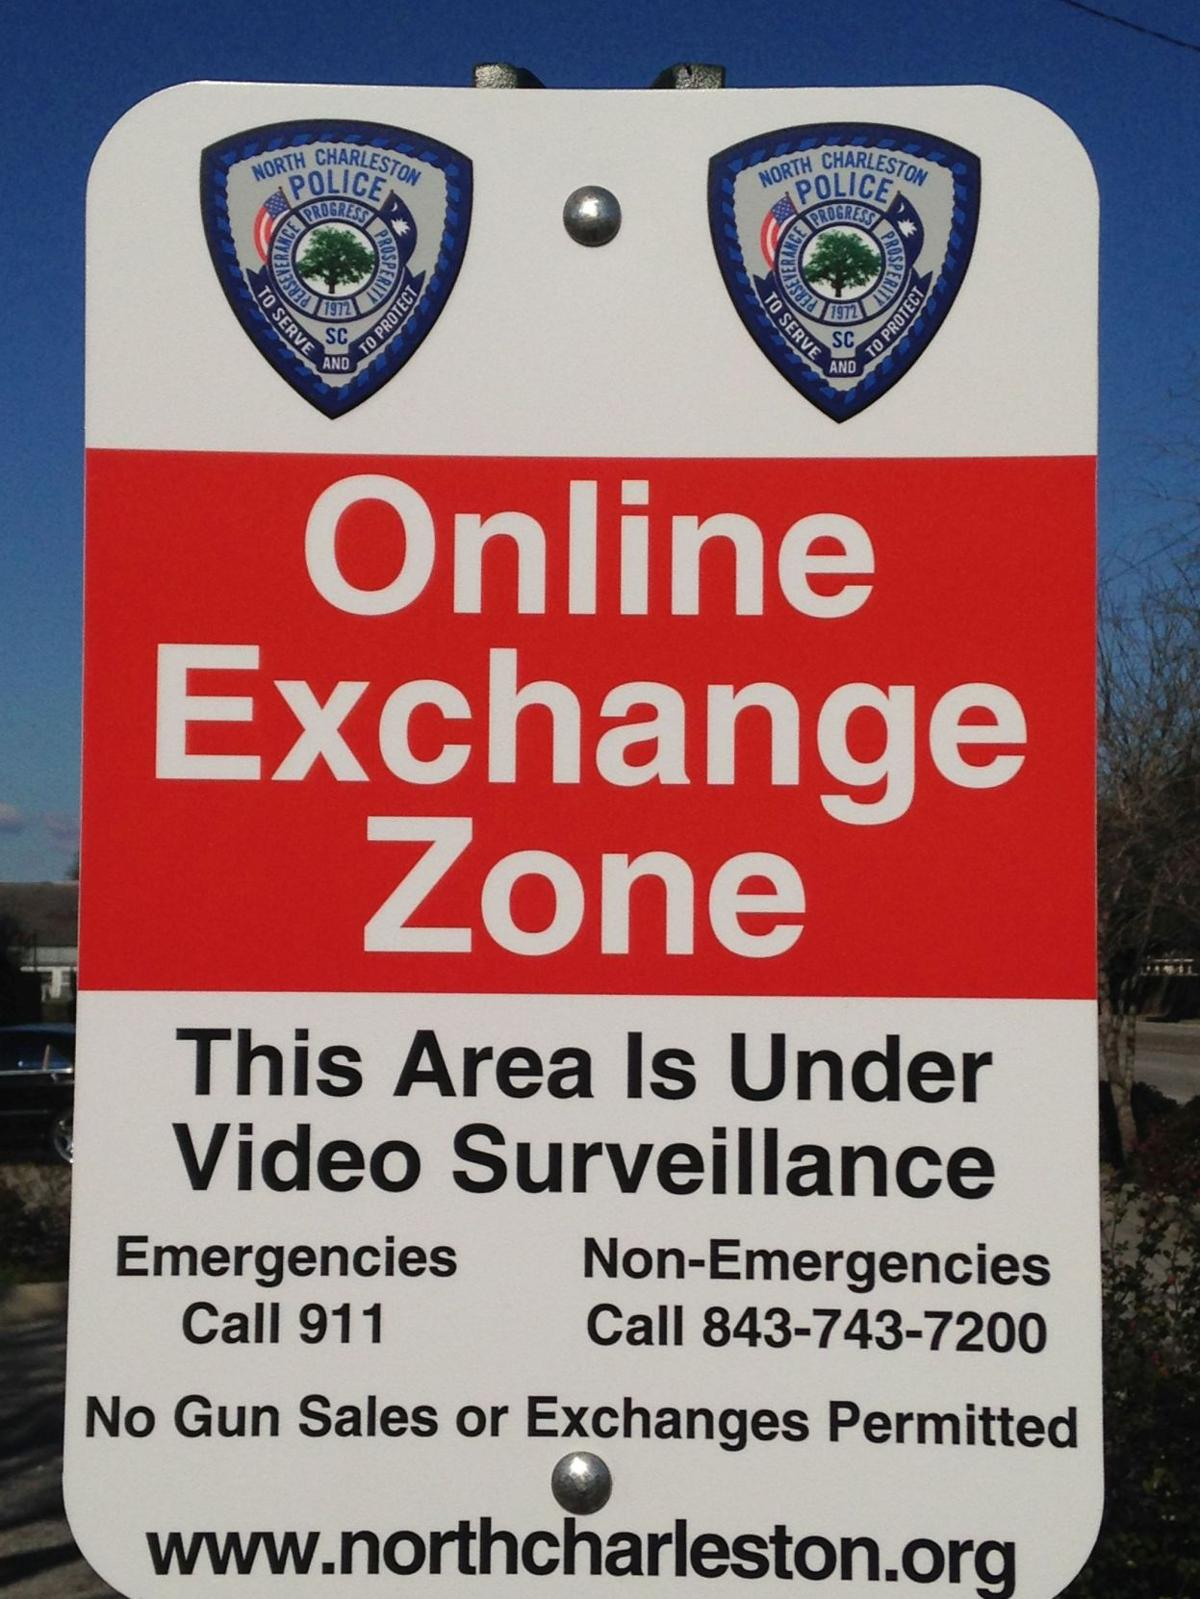 Local police agencies setting up safe zones for online sales